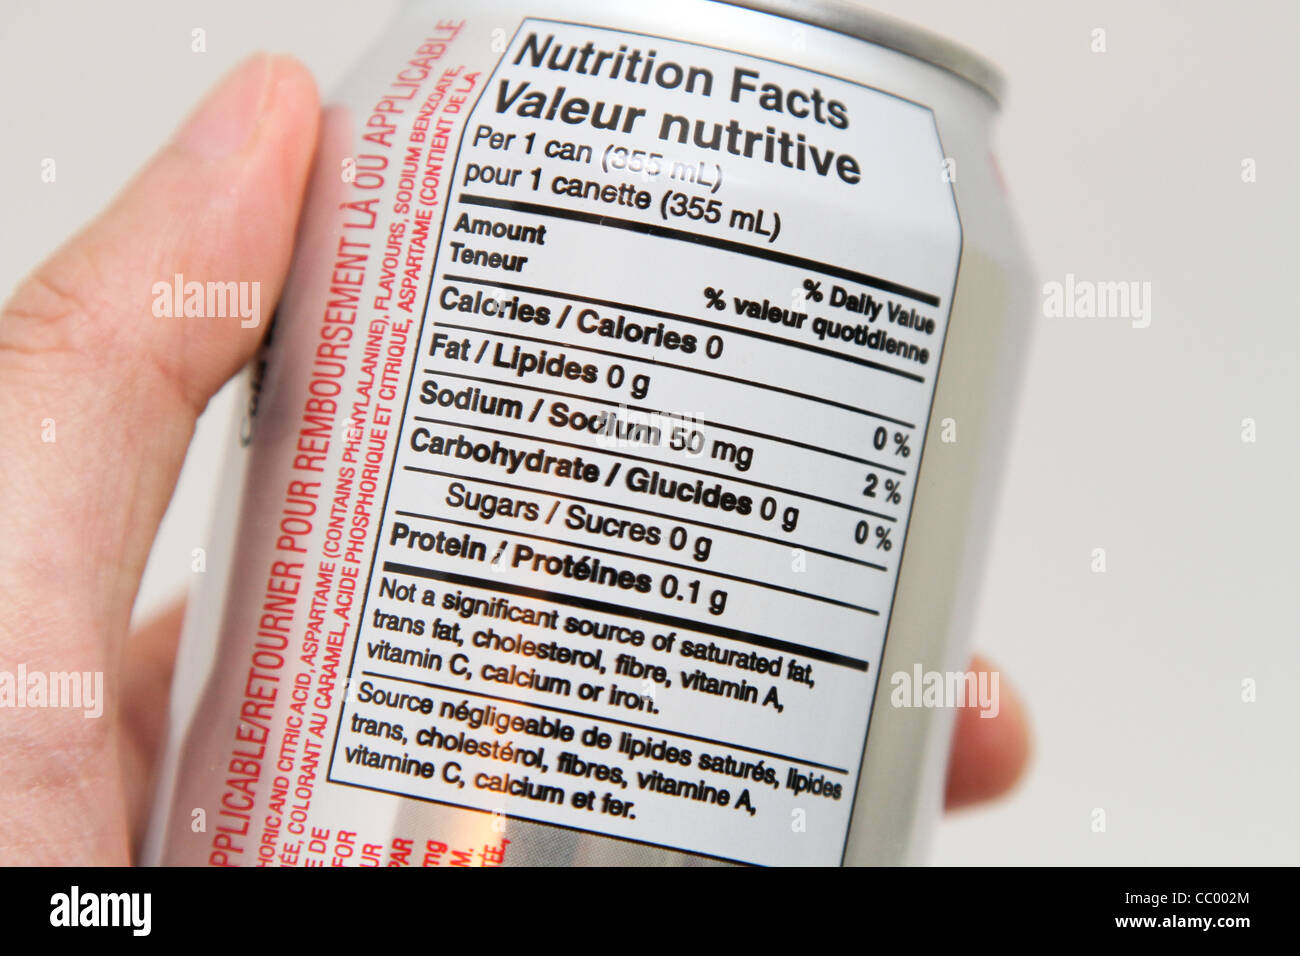 nutrition label diet coke can coca cola Stock Photo ...